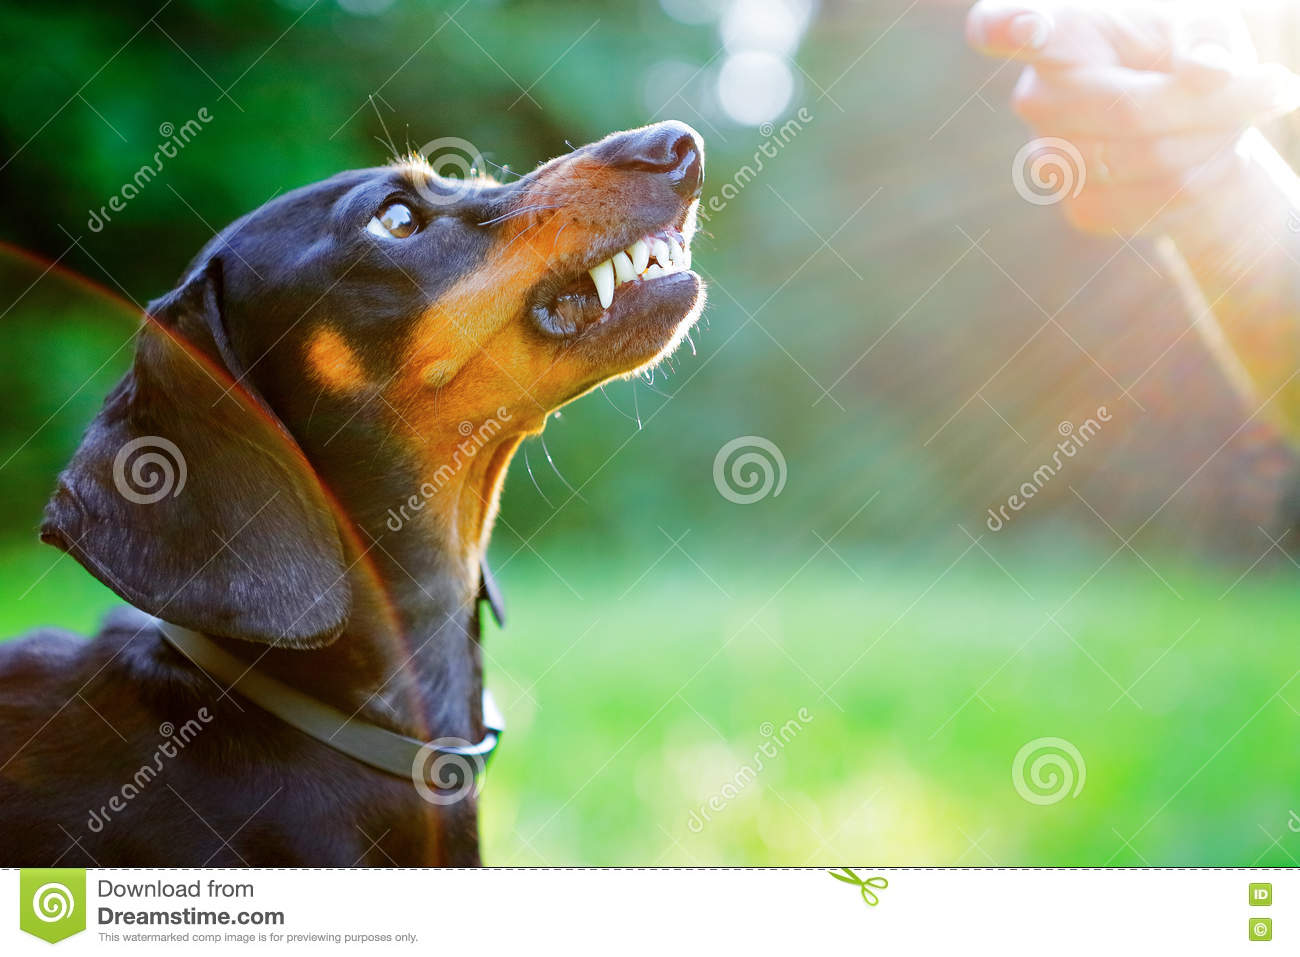 Aggressive Black Dachshund Bared Its Teeth In Front Of The